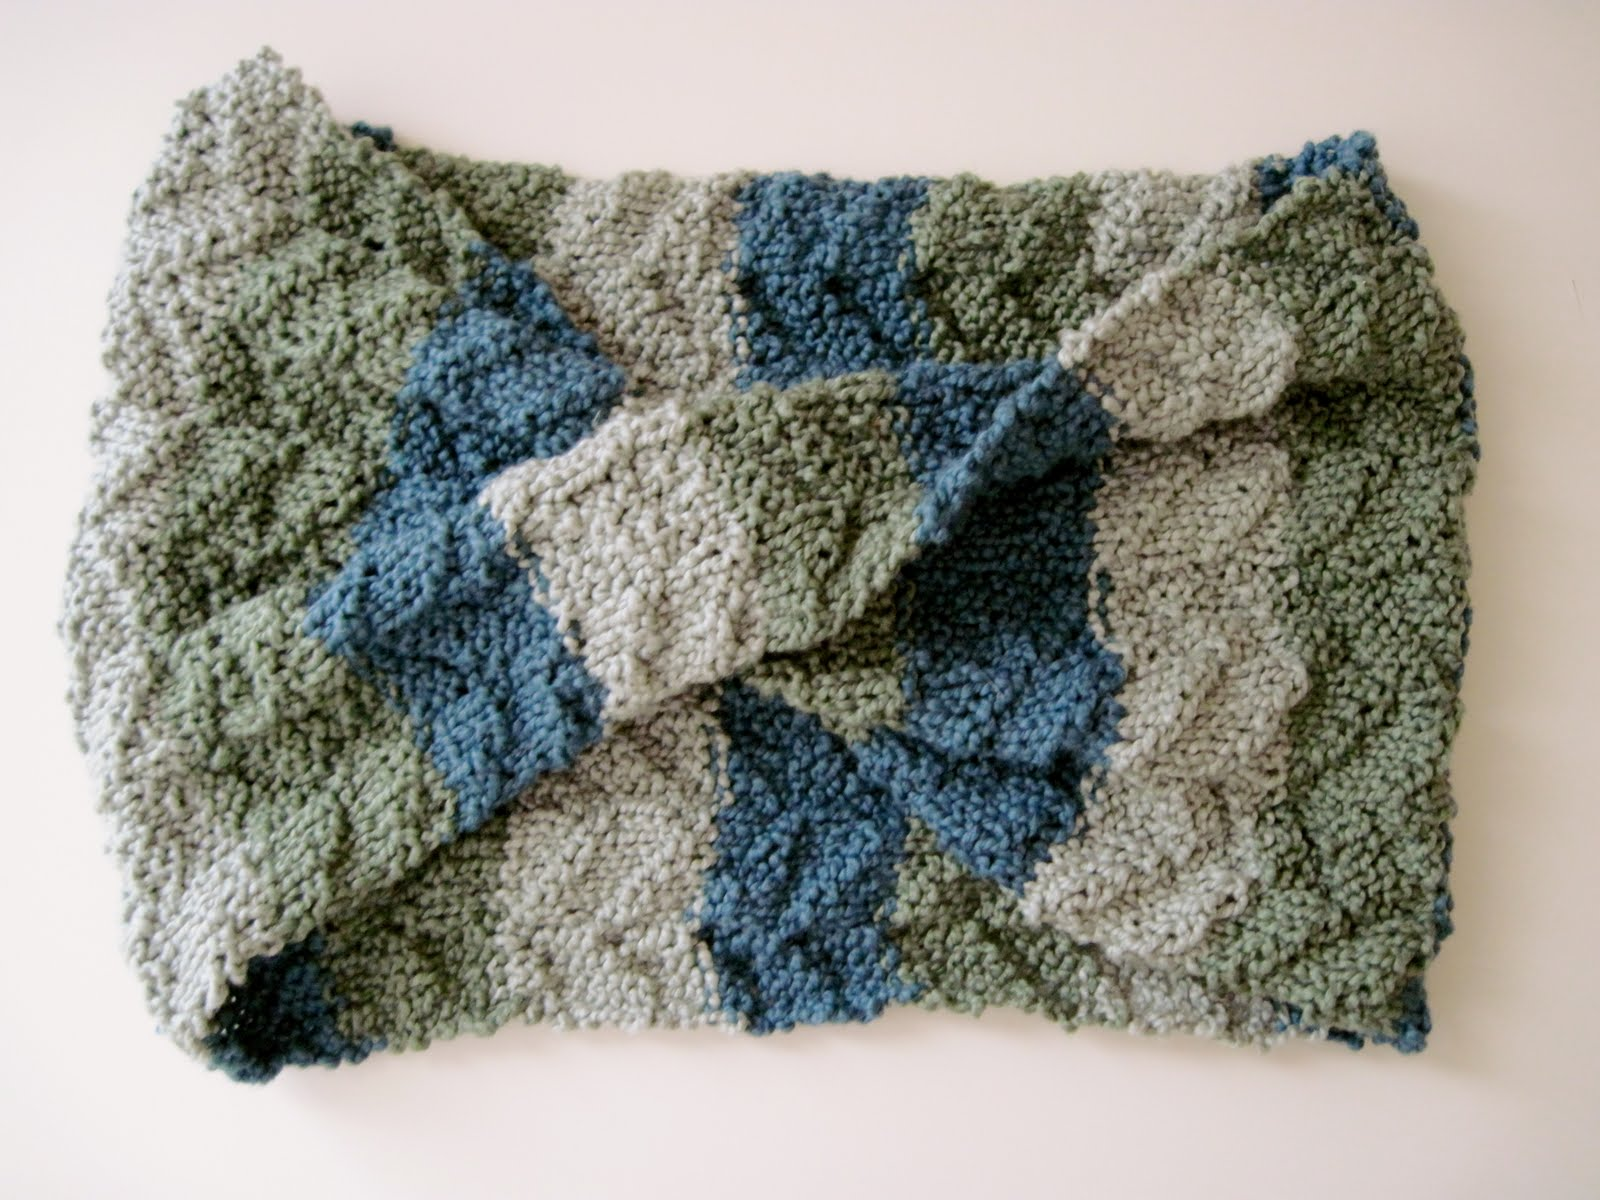 Free Patterns For Knitted Scarves : FREE LACE SCARF KNITTING PATTERNS   Free Patterns